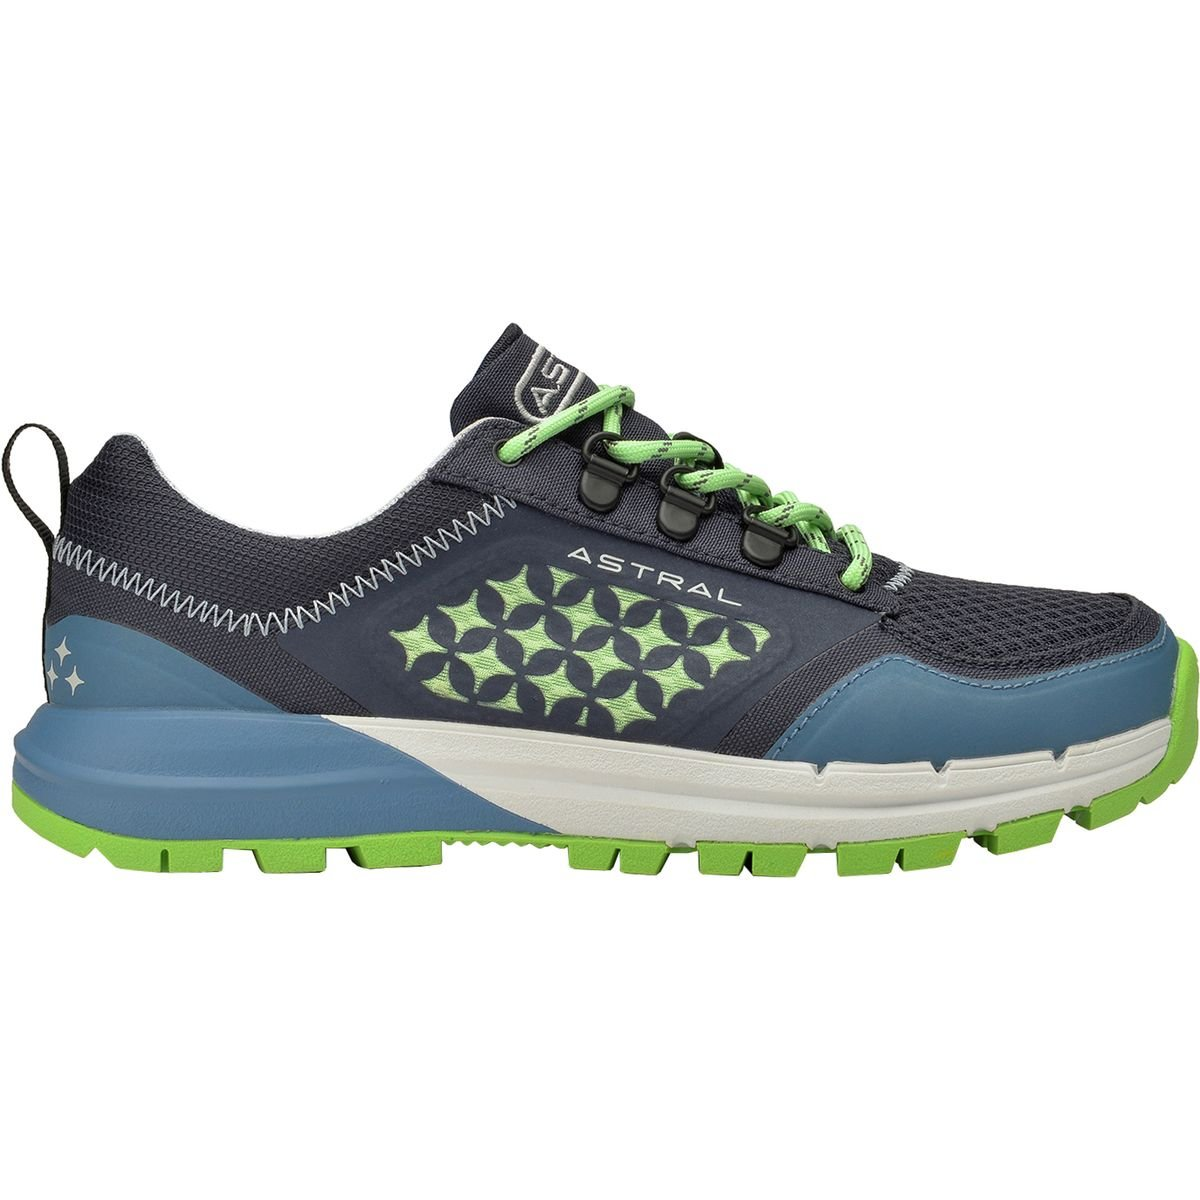 Astral Tr1 Trek Water Shoe - Women's Deep Water Navy, 7.0 by Astral